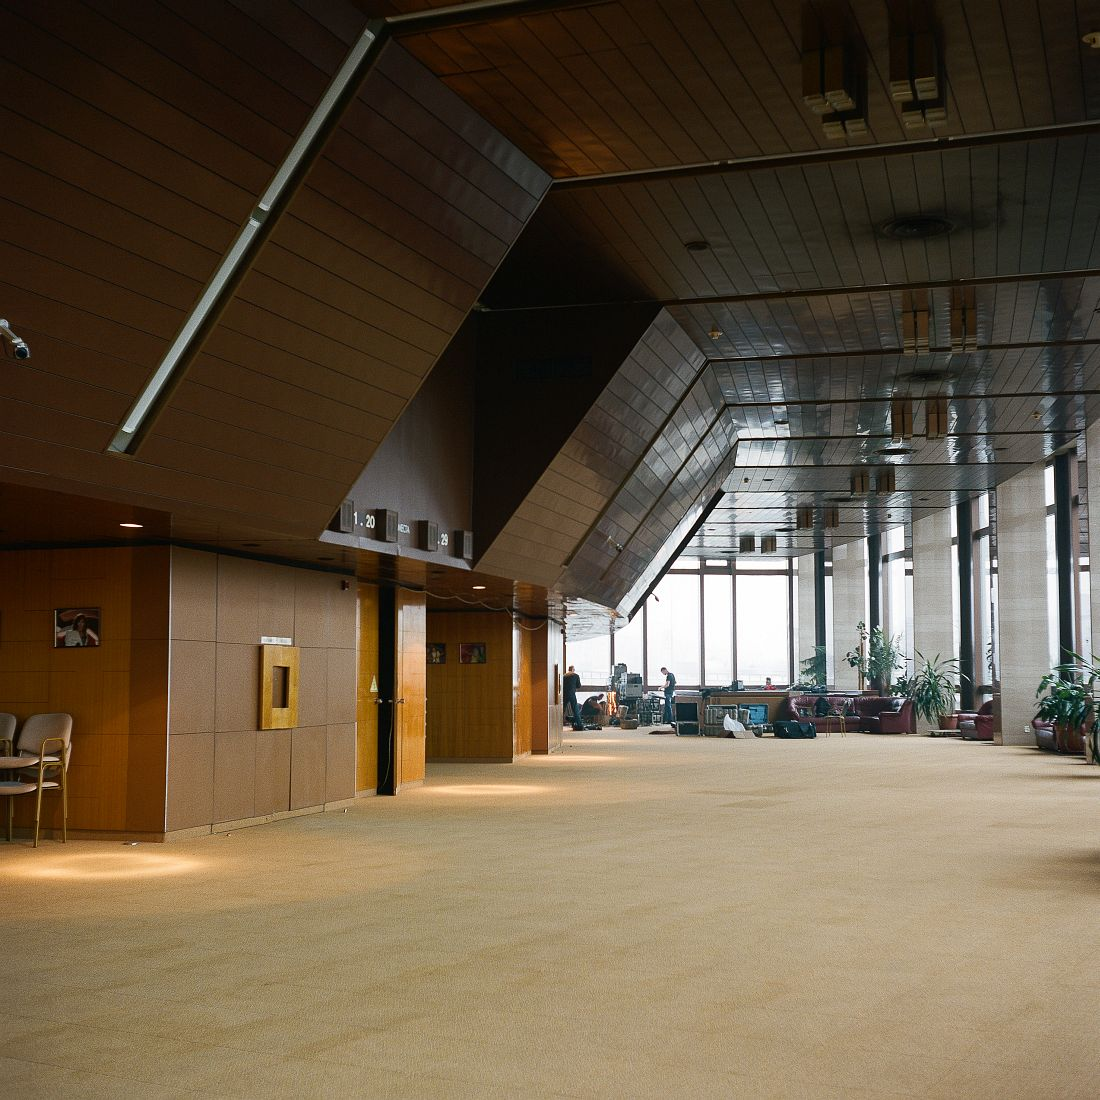 Interior of main hall at Cosmos Hotel. The hotel was completed in 1979 as the main facility for tourists and also hosted one of the Olympic press-centres.